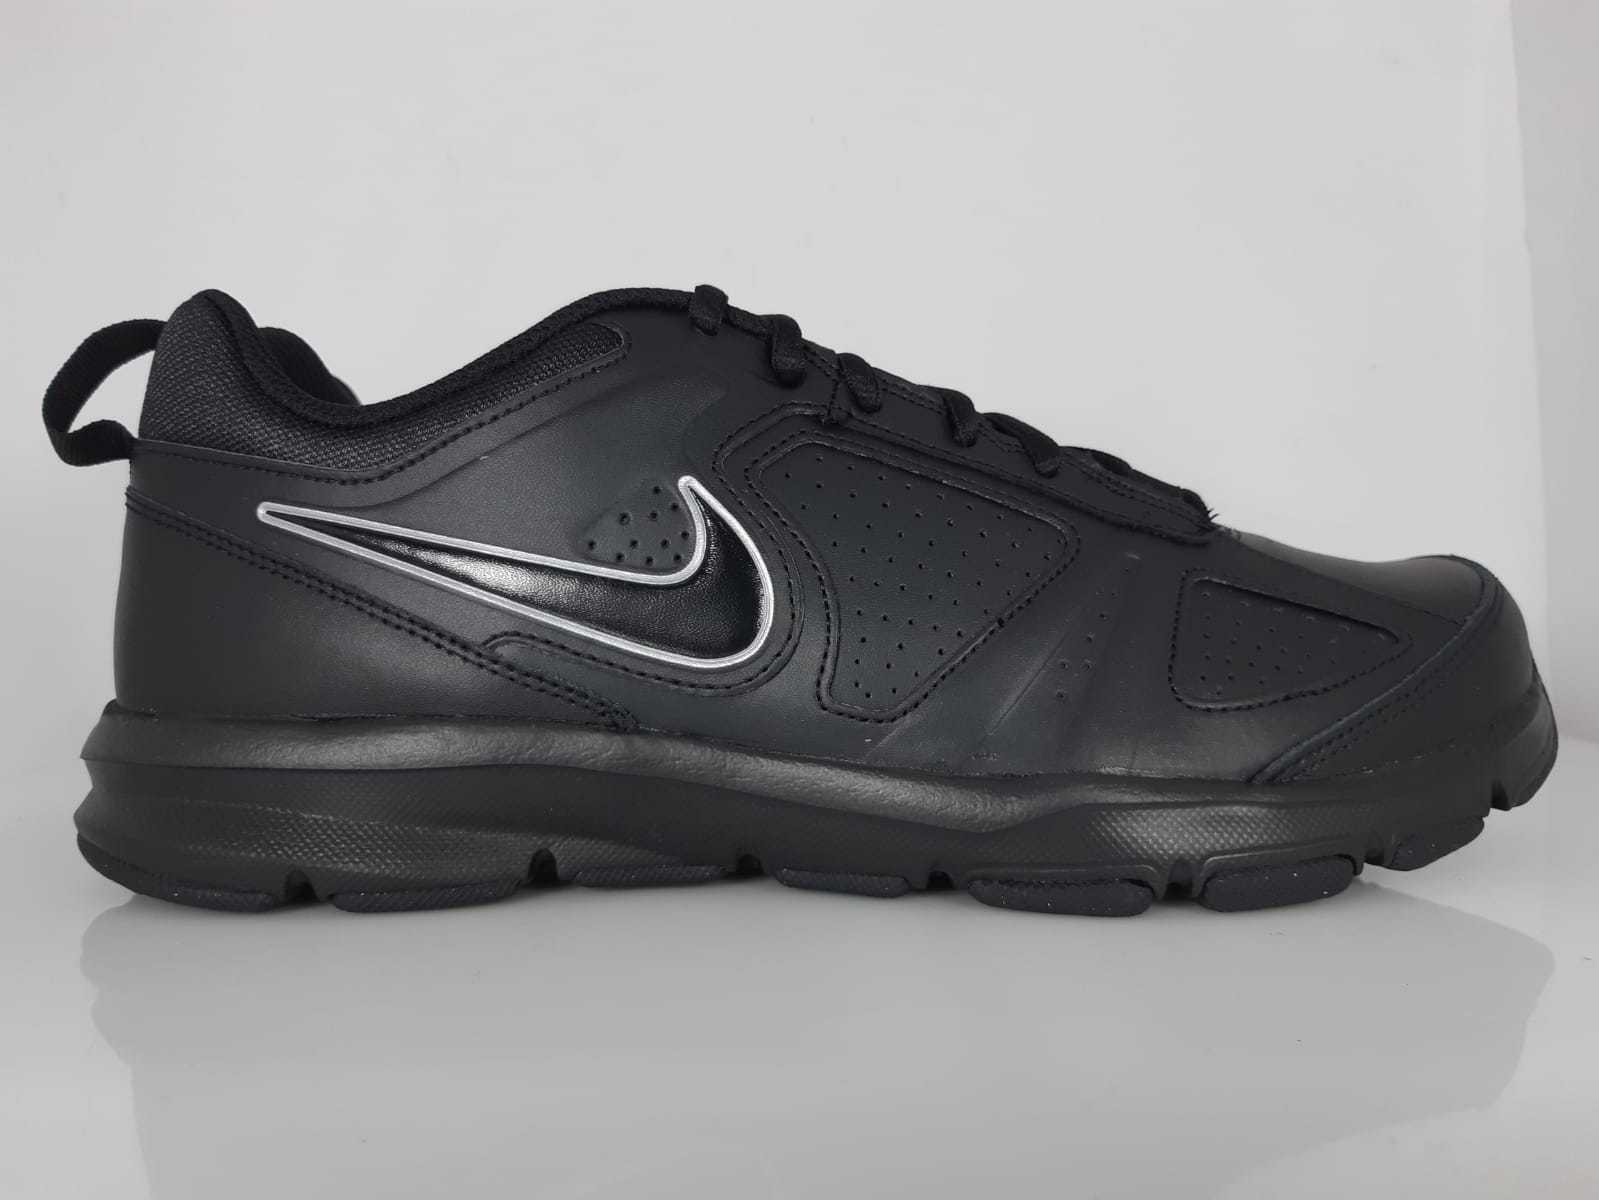 482b40d840c shoes N. 45 UK 10 CM. NIKE T-LITE XI ART. 616544 007 29 oajcjn3038-Women s  Trainers